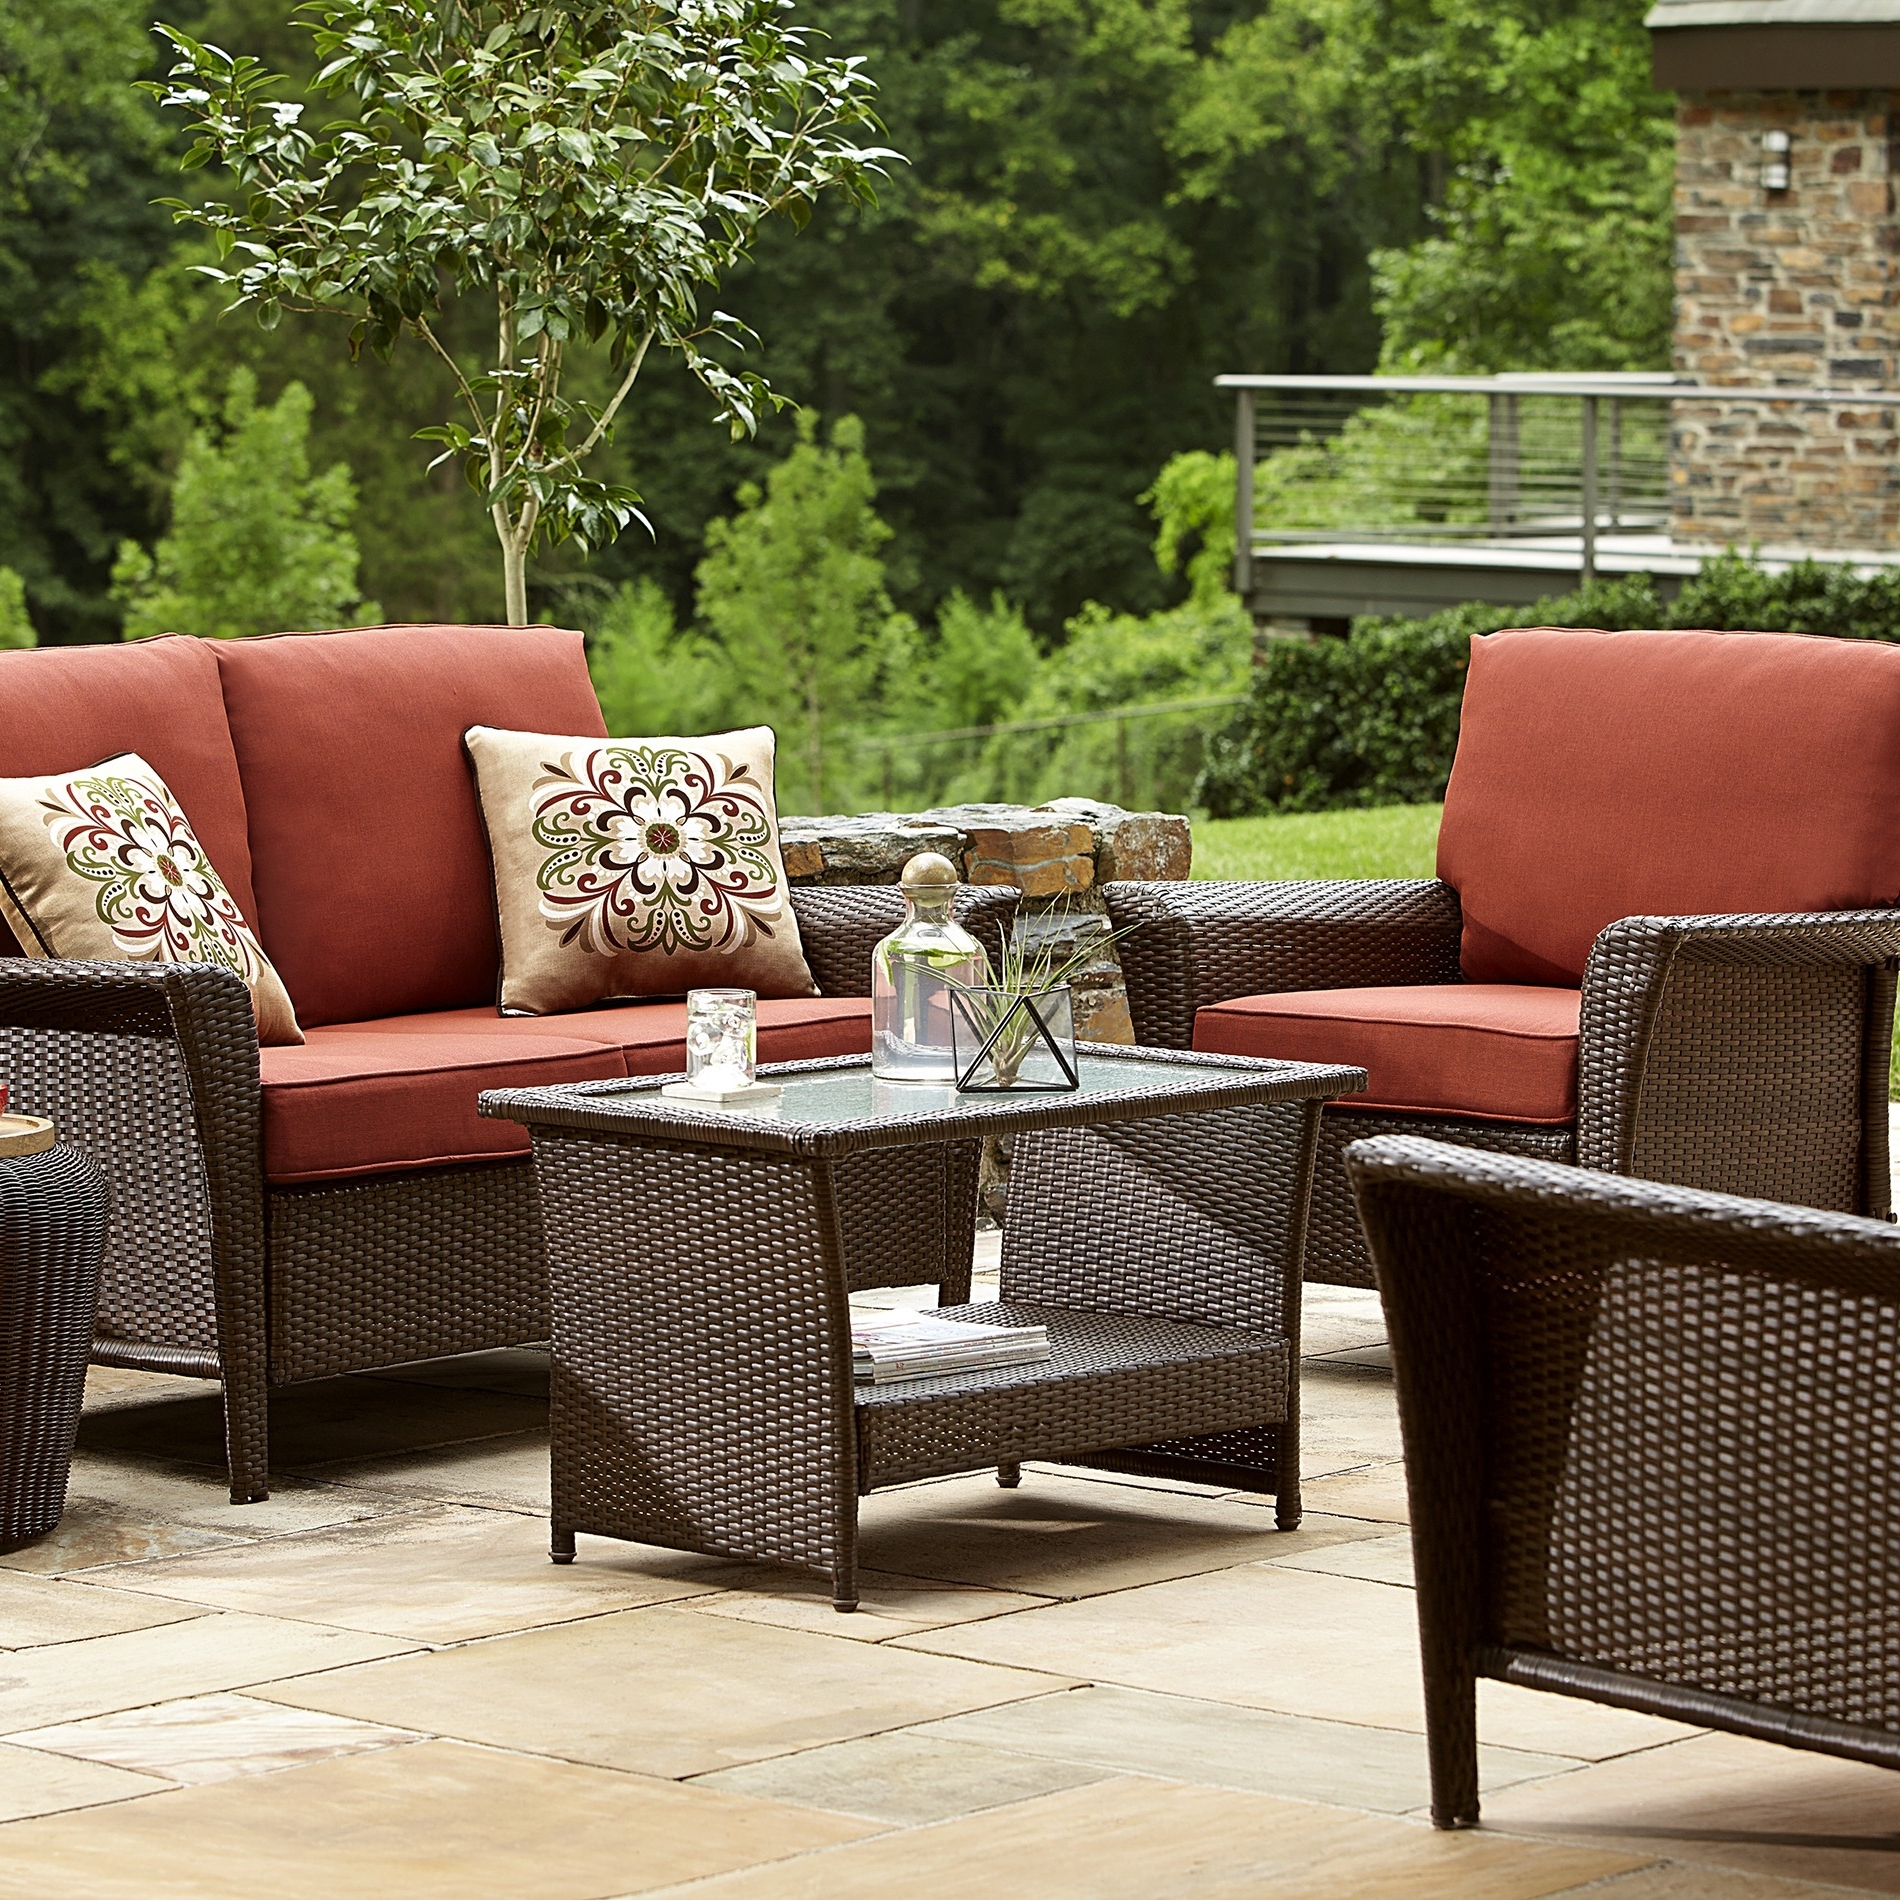 Preferred Fantastic Deep Seating Patio Furniture Clearance Dã©Cor Gallery With Sears Patio Furniture Conversation Sets (View 5 of 15)